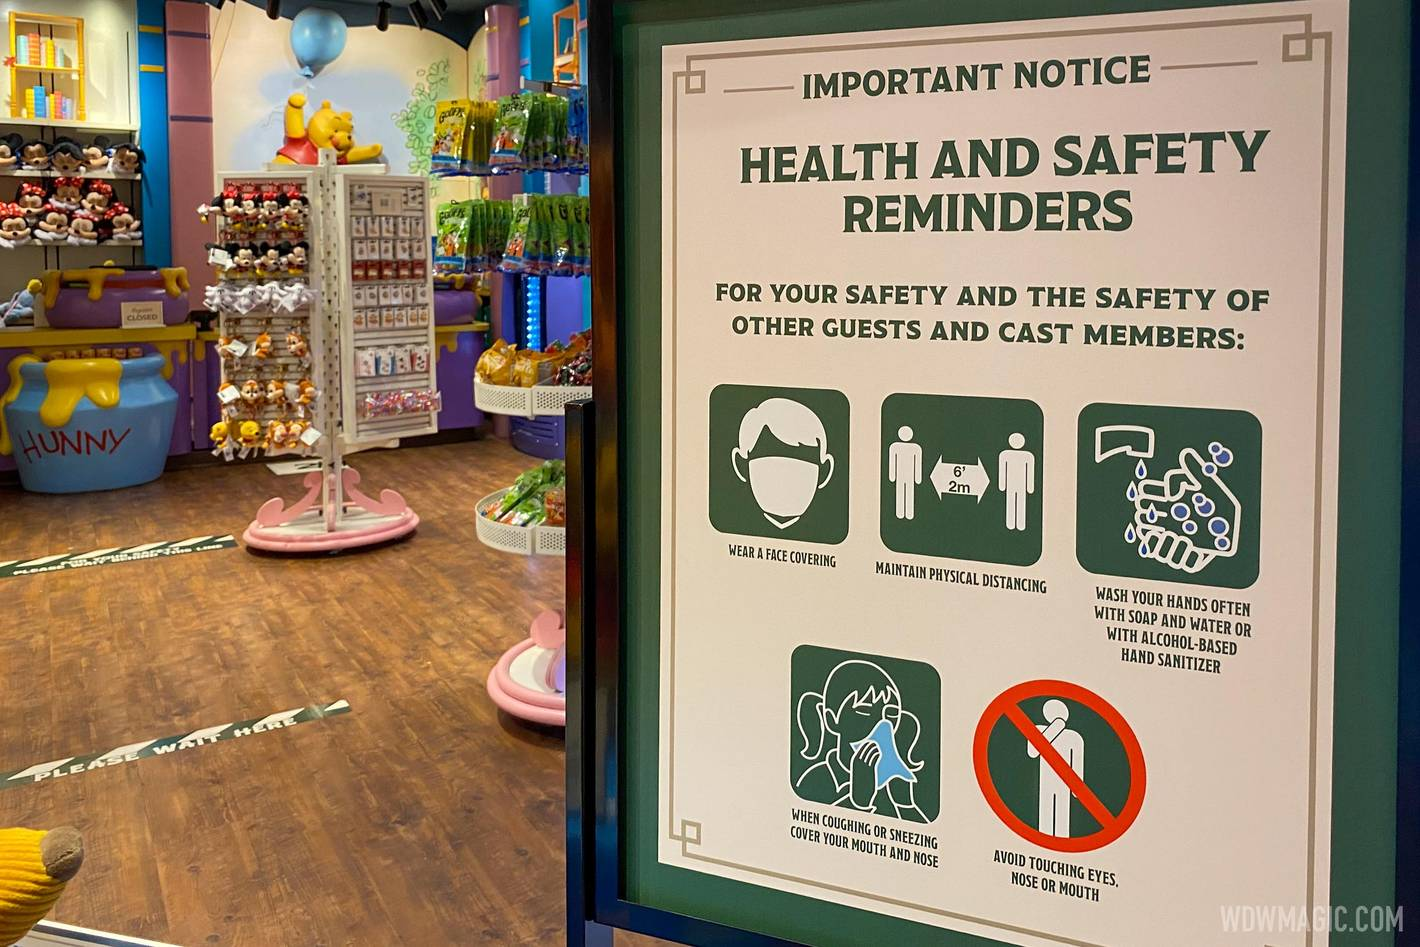 Disney theme parks have been under COVID-19 restrictions since reopening in July 2020